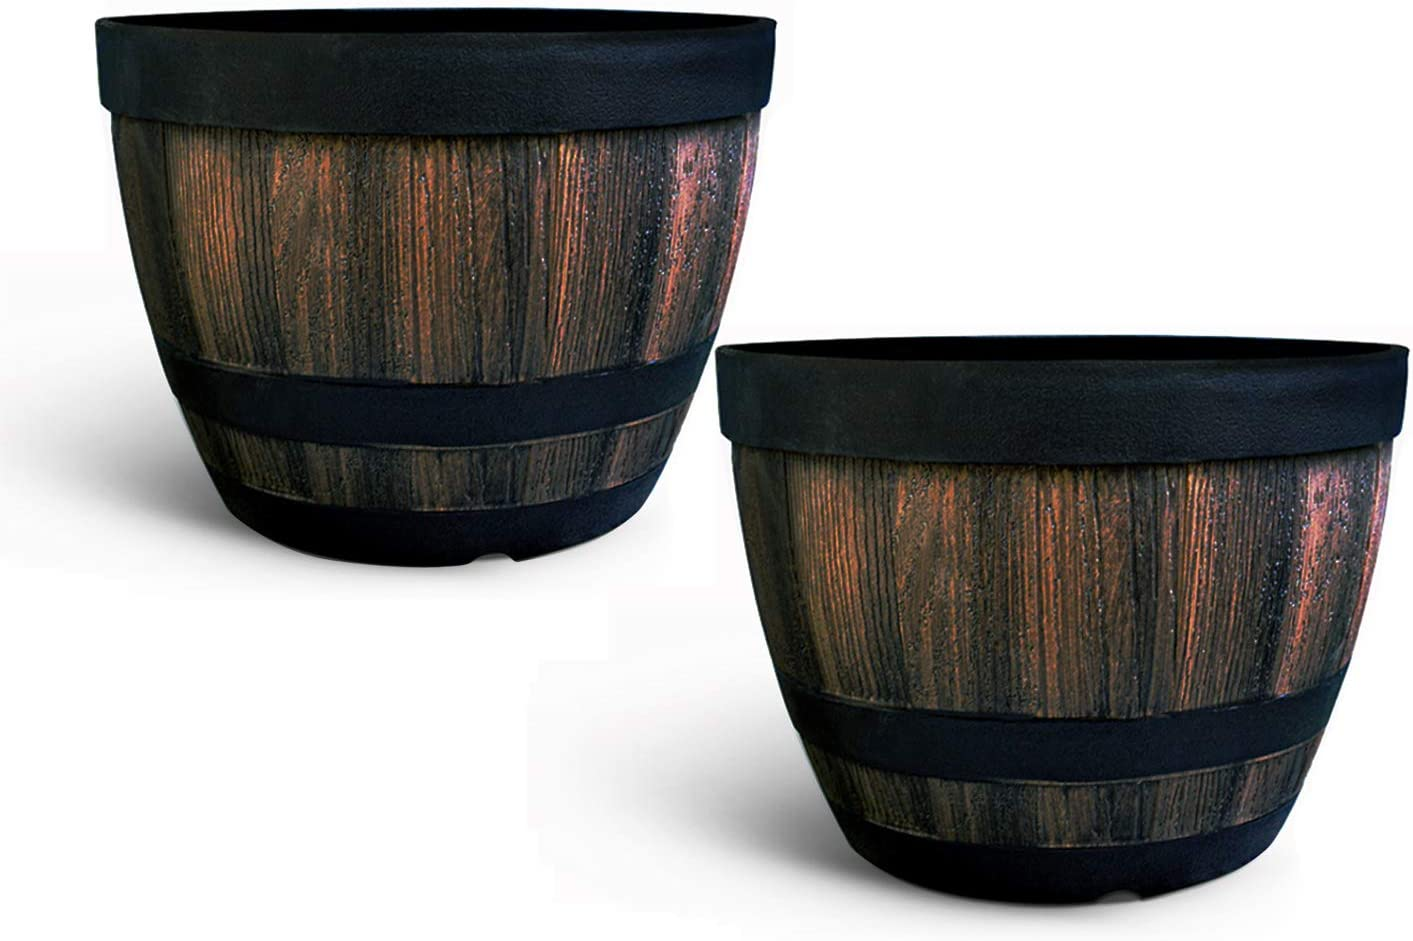 Flower Pots Outdoor Indoor Garden Planters,Plant Containers with Drain Hole, Ideal for Plants,Gardens, Patios, Imitation Wooden Barrel Design-9 Inch Wine Barrel Basin??2 Piece?